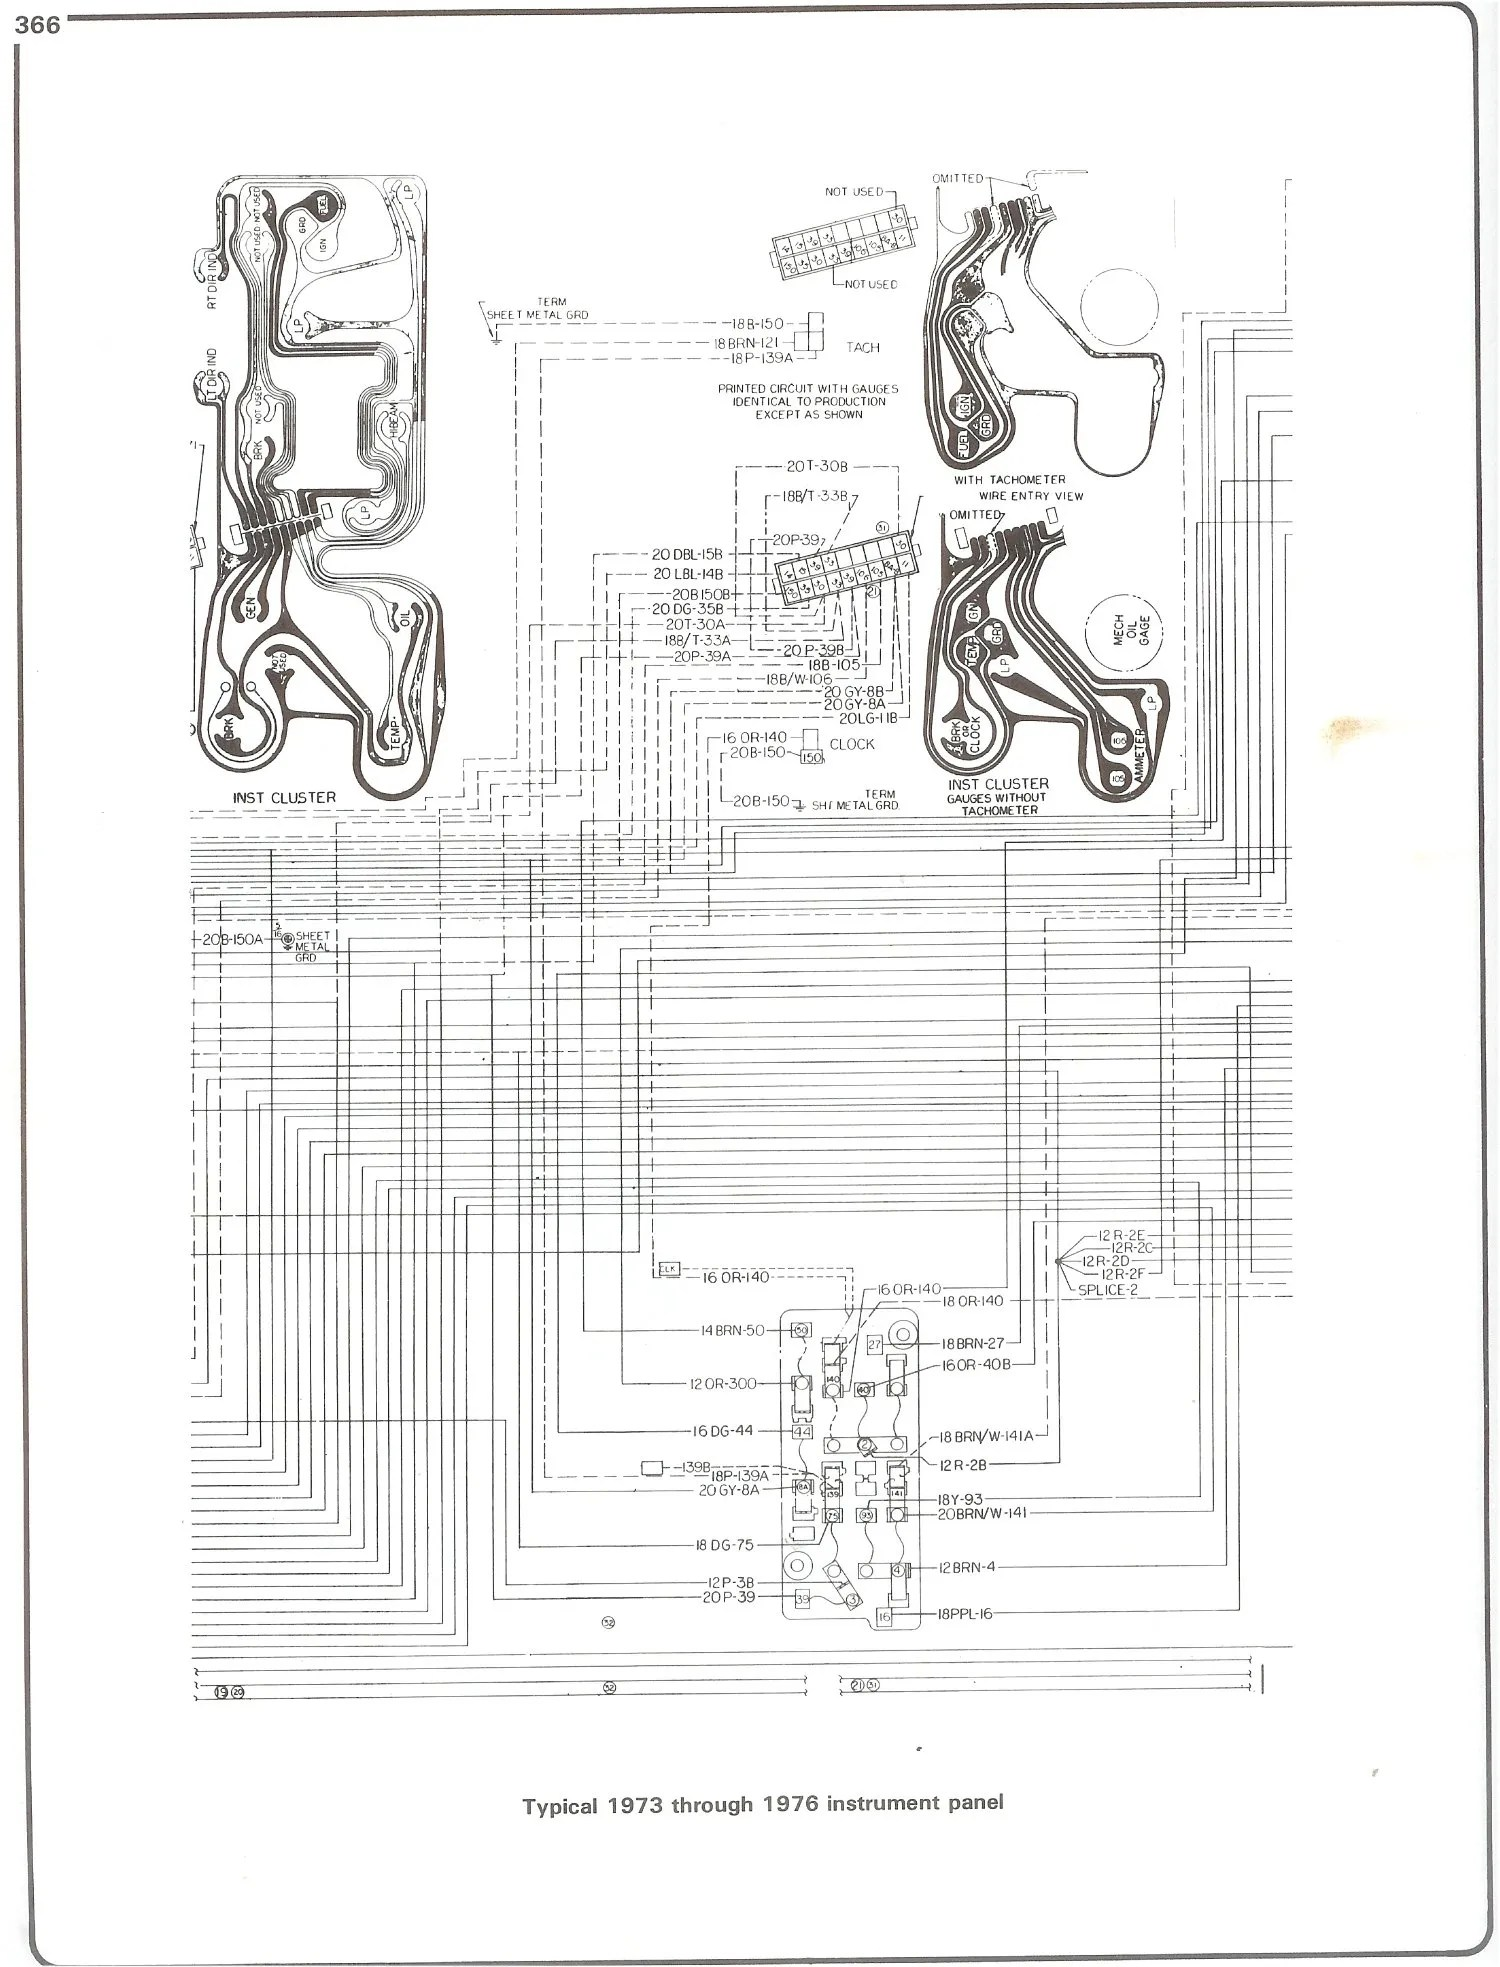 hight resolution of 1983 chevy p30 wiring diagram wiring diagram used complete 73 87 wiring diagrams 1983 chevy p30